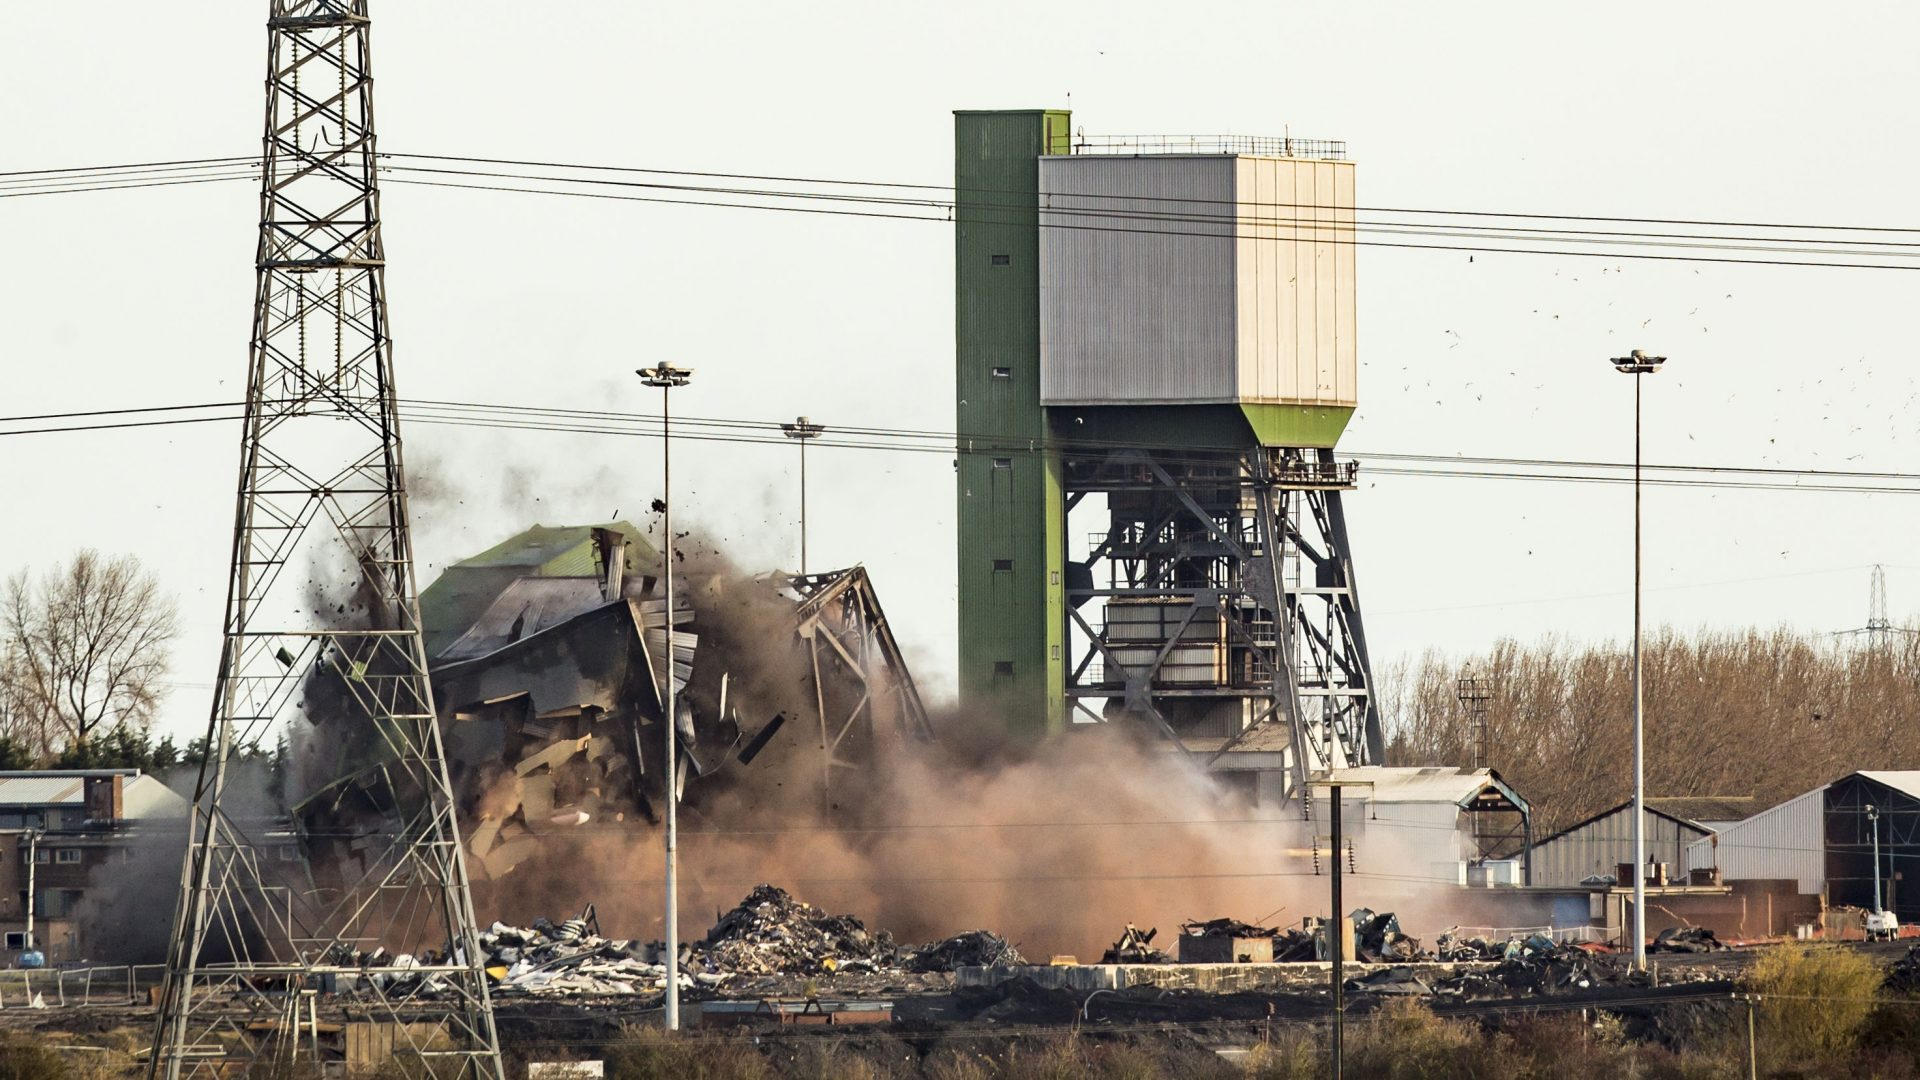 The No 2 Winding Tower at Kellingley Colliery in Yorkshire is demolished (Danny Lawson/PA)